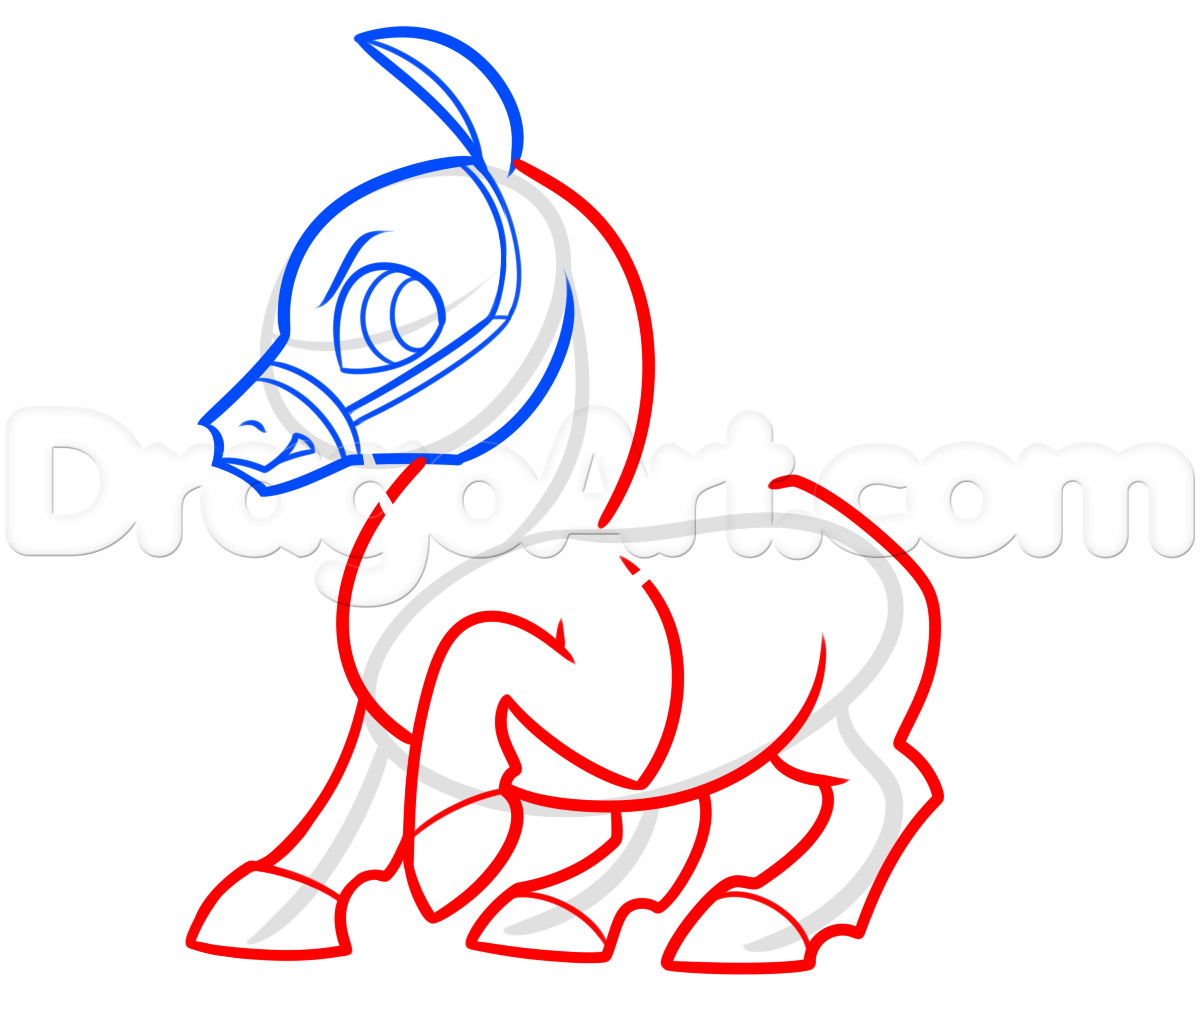 1200x1011 Draw Maximus From Tangled Chibi Style, Step